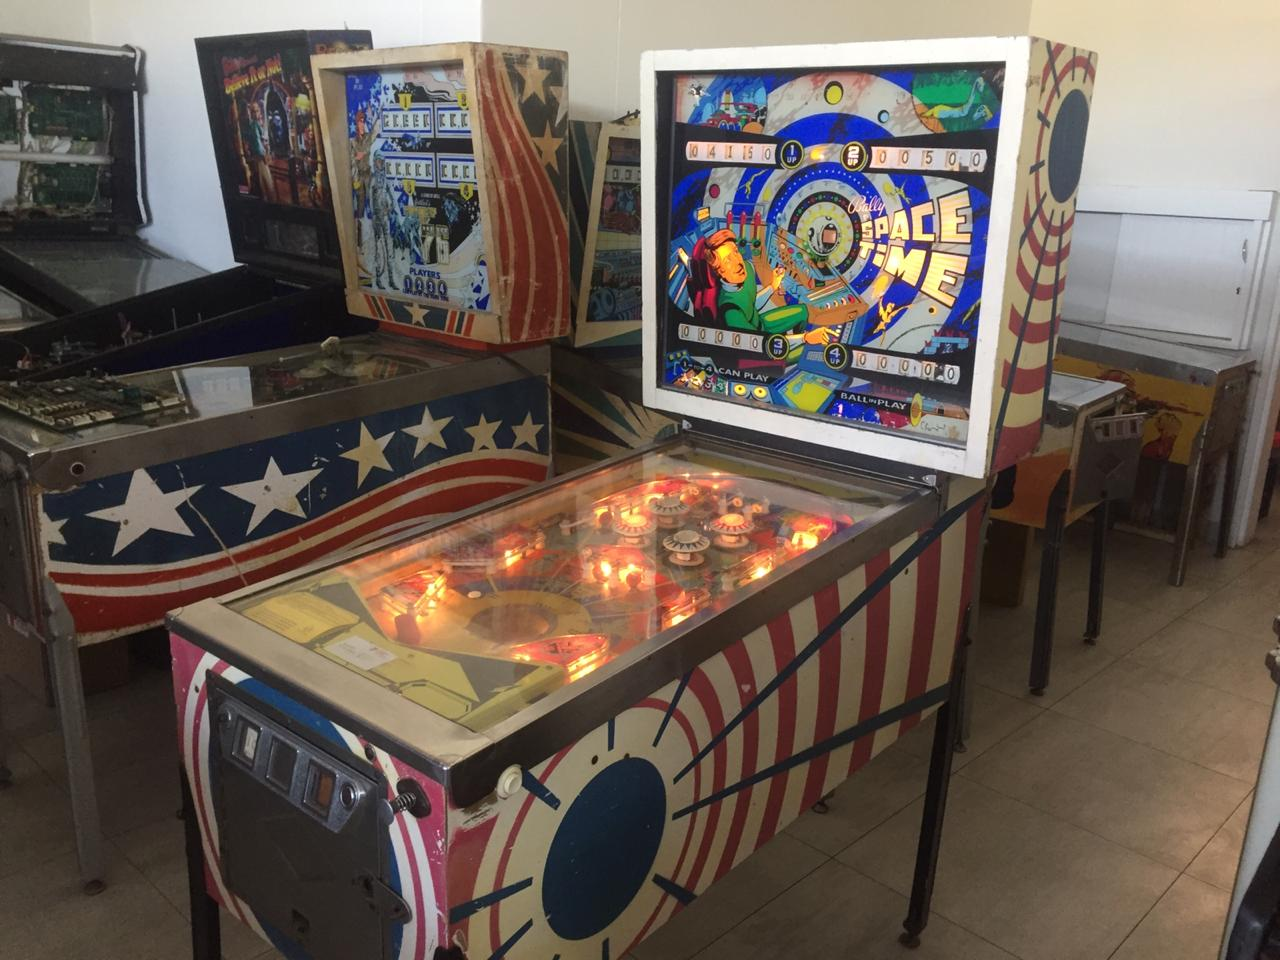 Space Time pinball machine 4 player by Bally for sale, urgent sale.